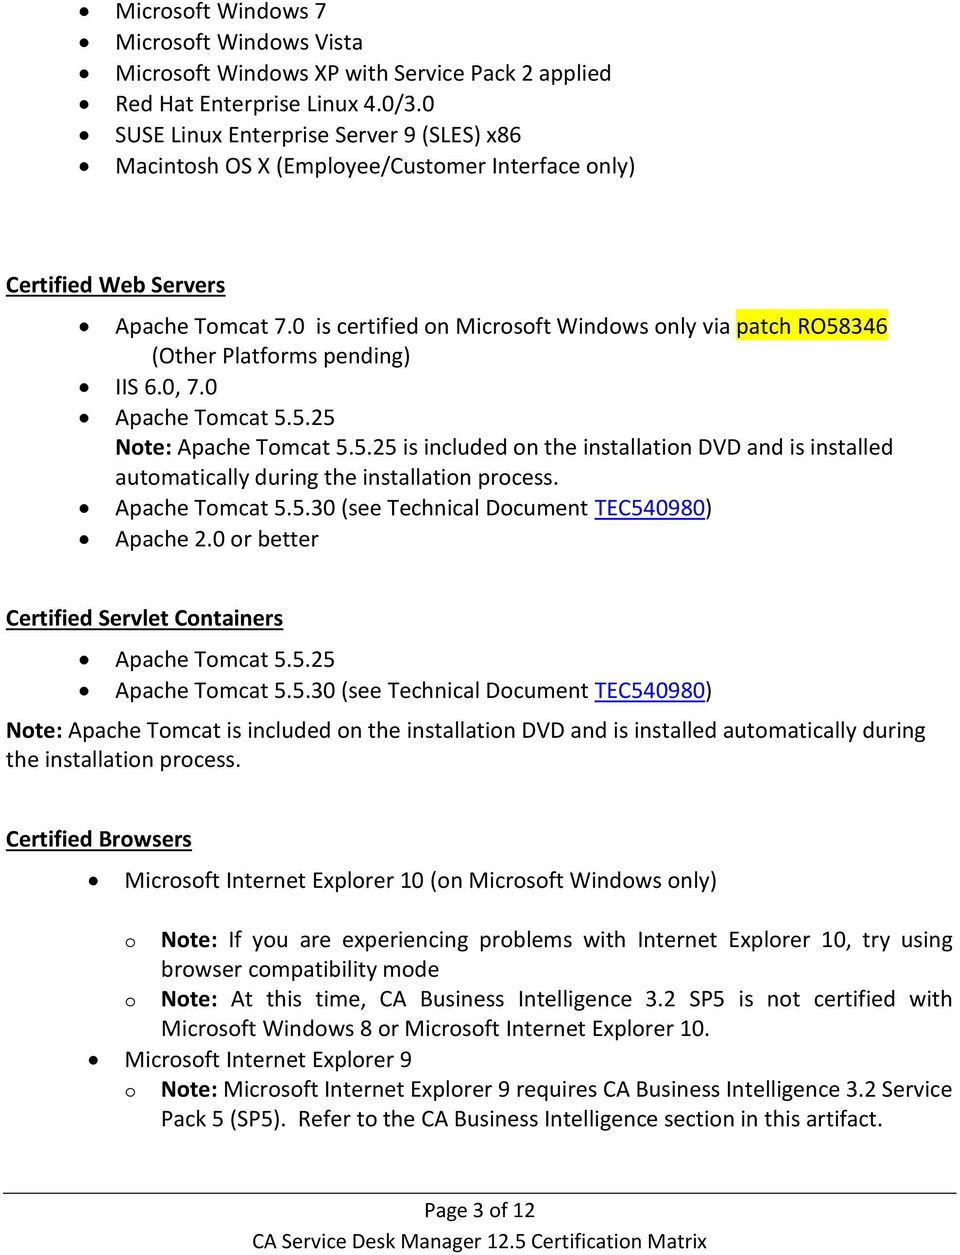 0 is certified on Microsoft Windows only via patch RO58346 (Other Platforms pending) IIS 6.0, 7.0 Apache Tomcat 5.5.25 Note: Apache Tomcat 5.5.25 is included on the installation DVD and is installed automatically during the installation process.